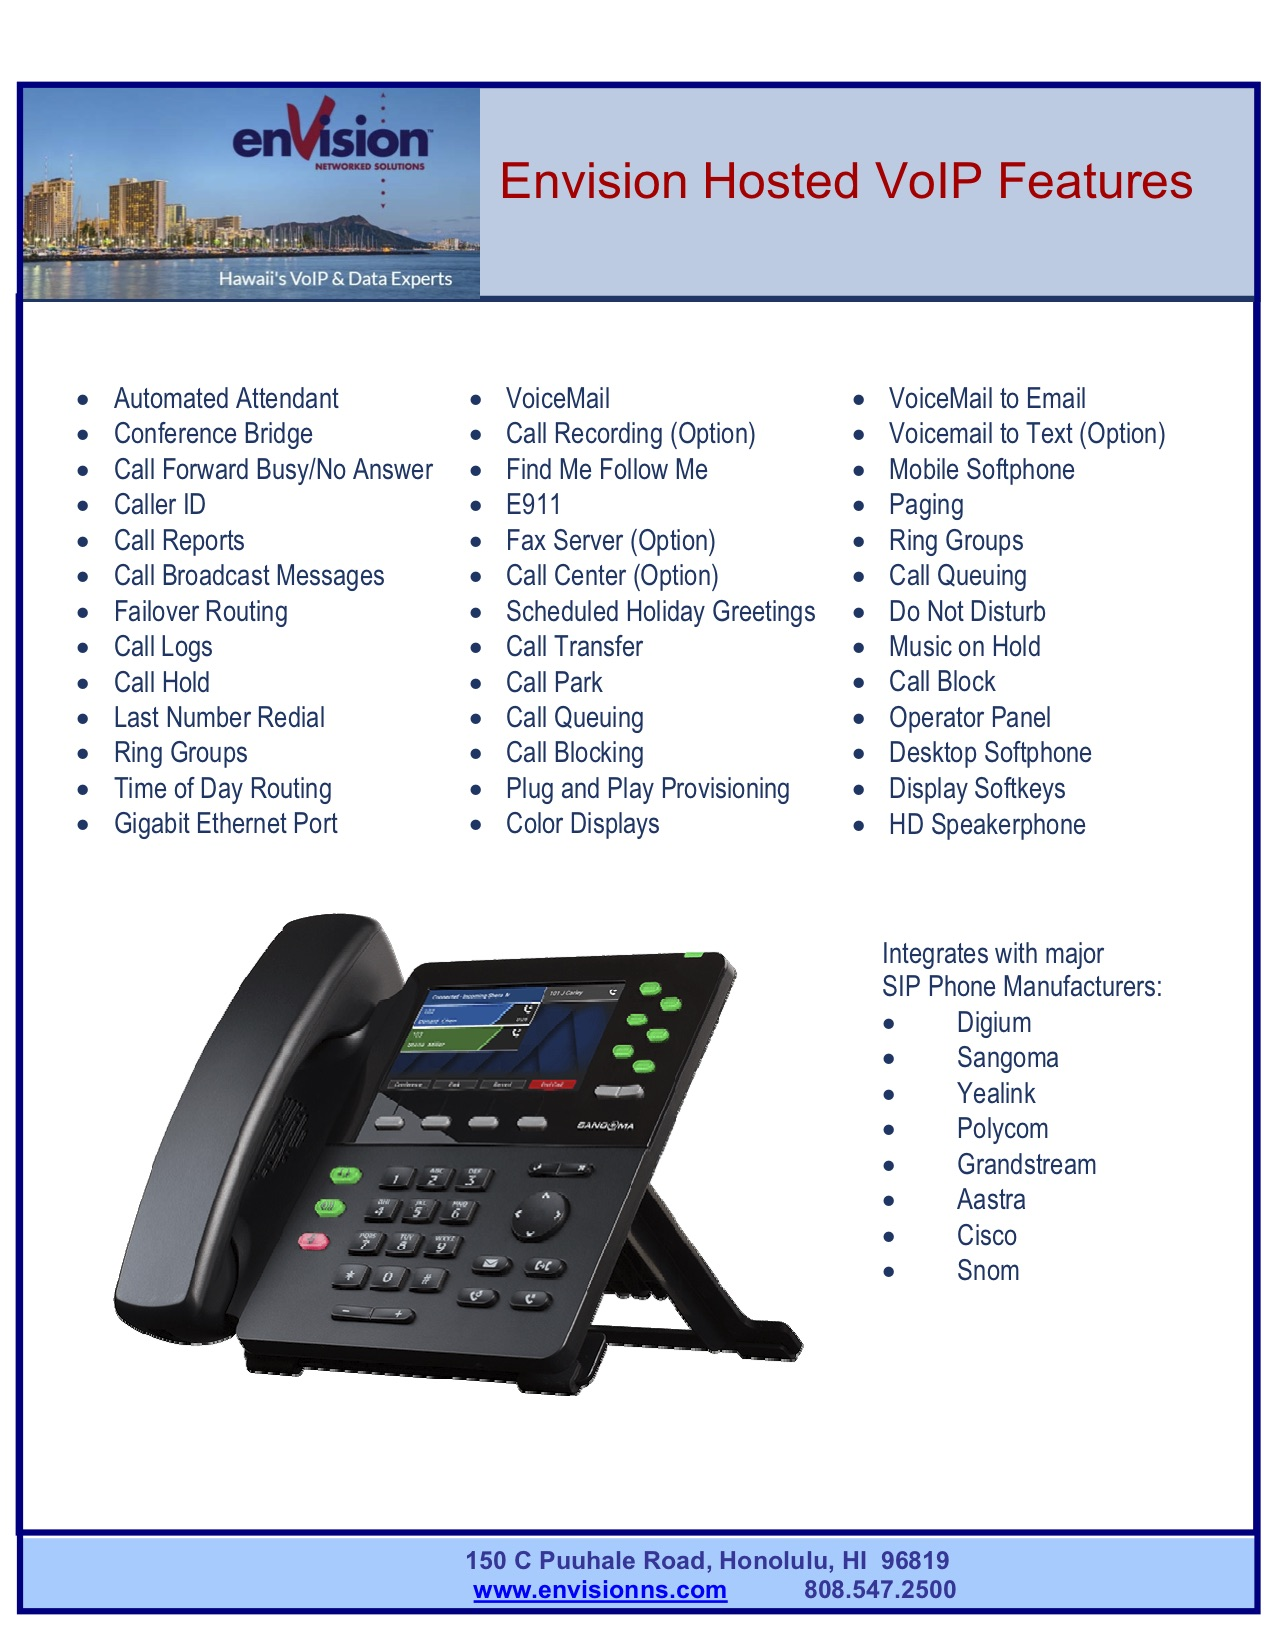 envision-hosted-voip2